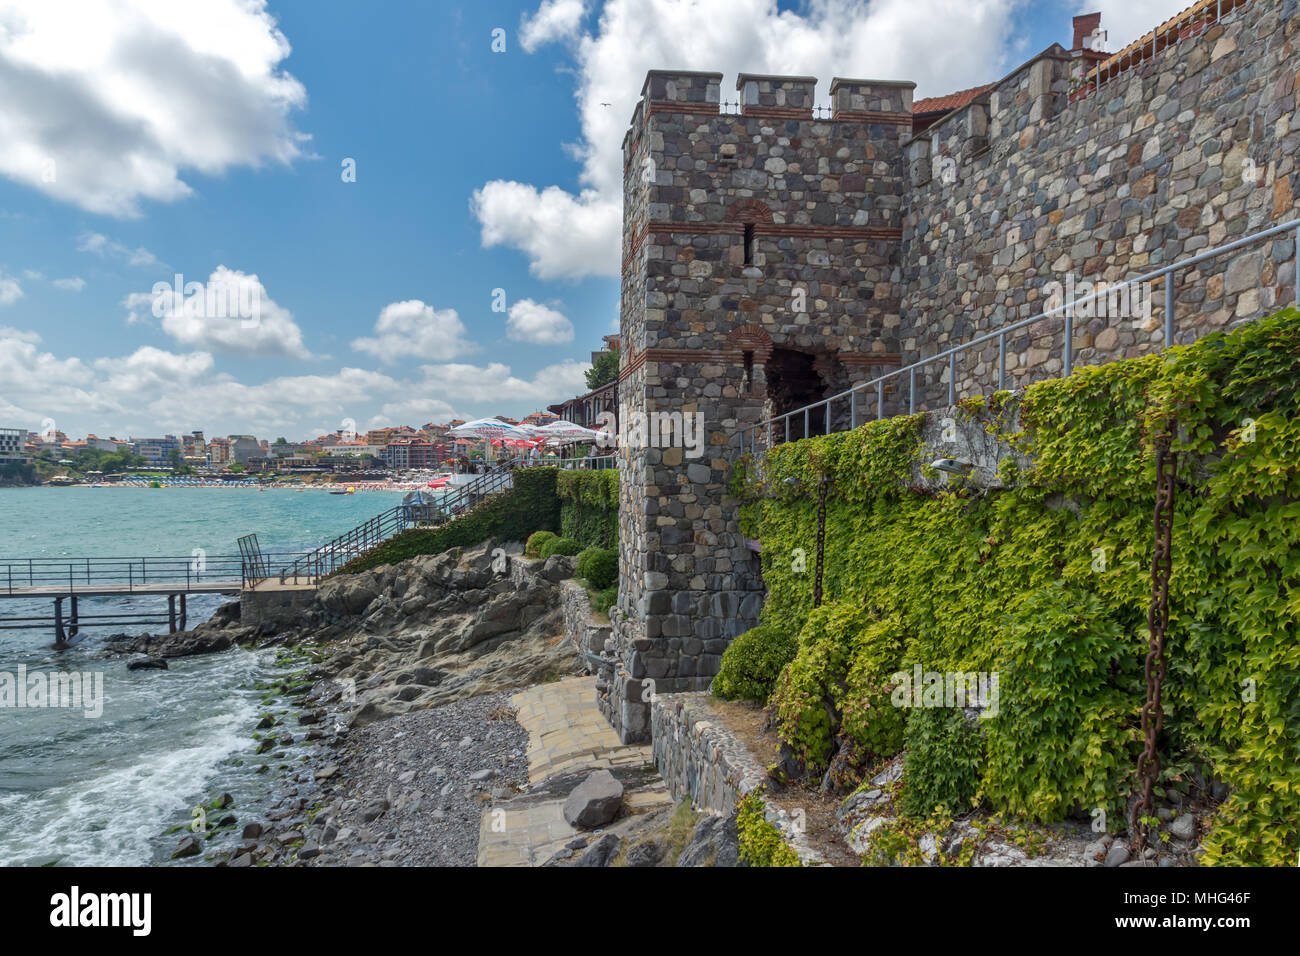 ancient fortifications and old town of Sozopol, Burgas Region, Bulgaria - Stock Image